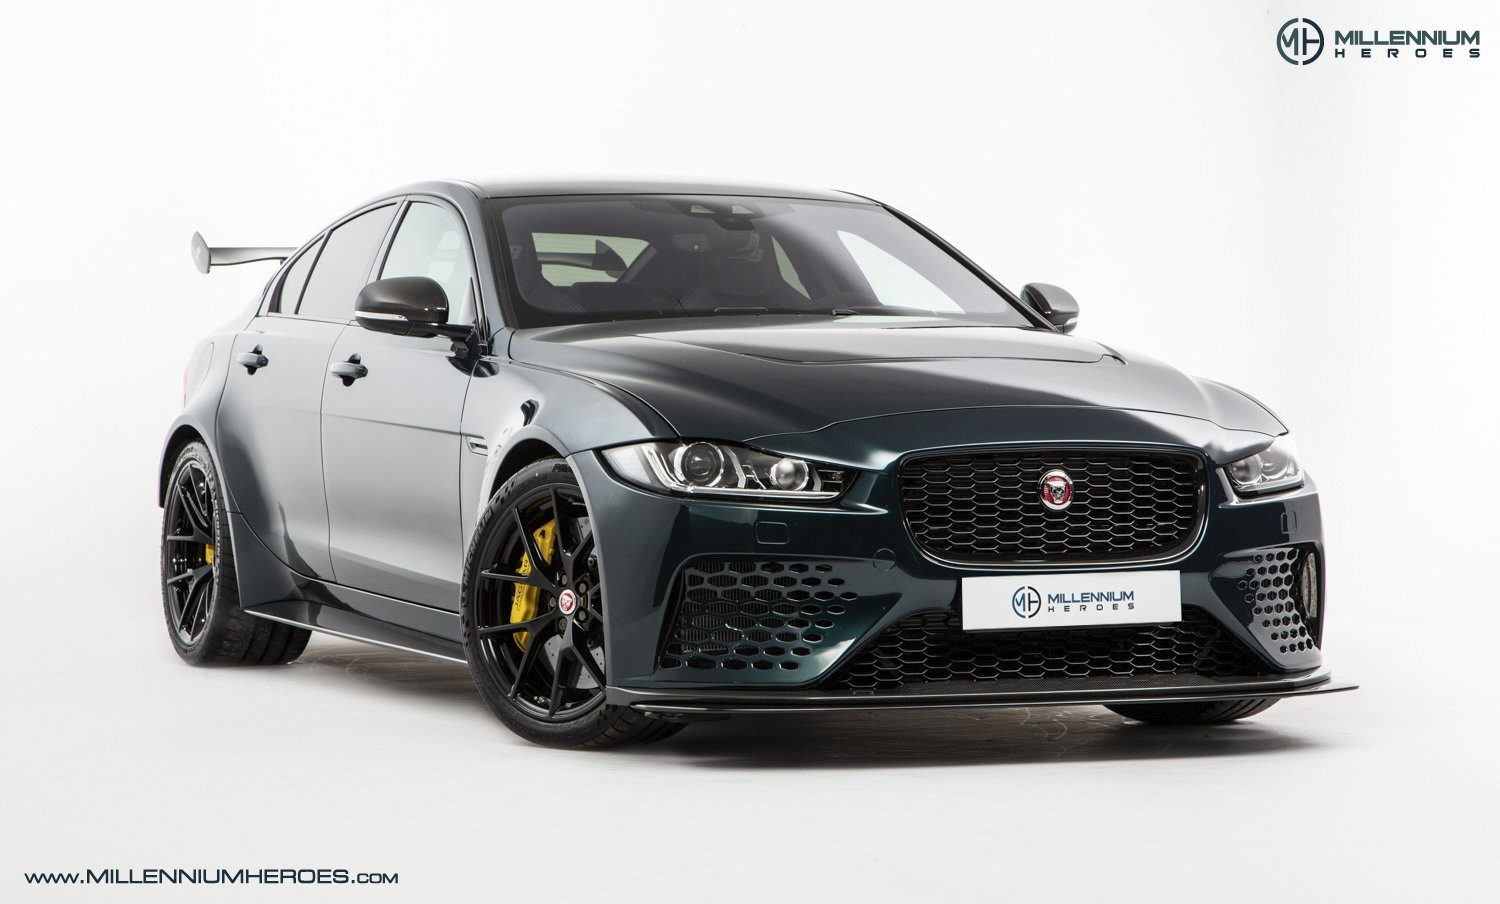 2019 JAGUAR XE SV PROJECT 8 // 1 OF 300 // 1K MILES // 1 OWNER  For Sale (picture 5 of 24)